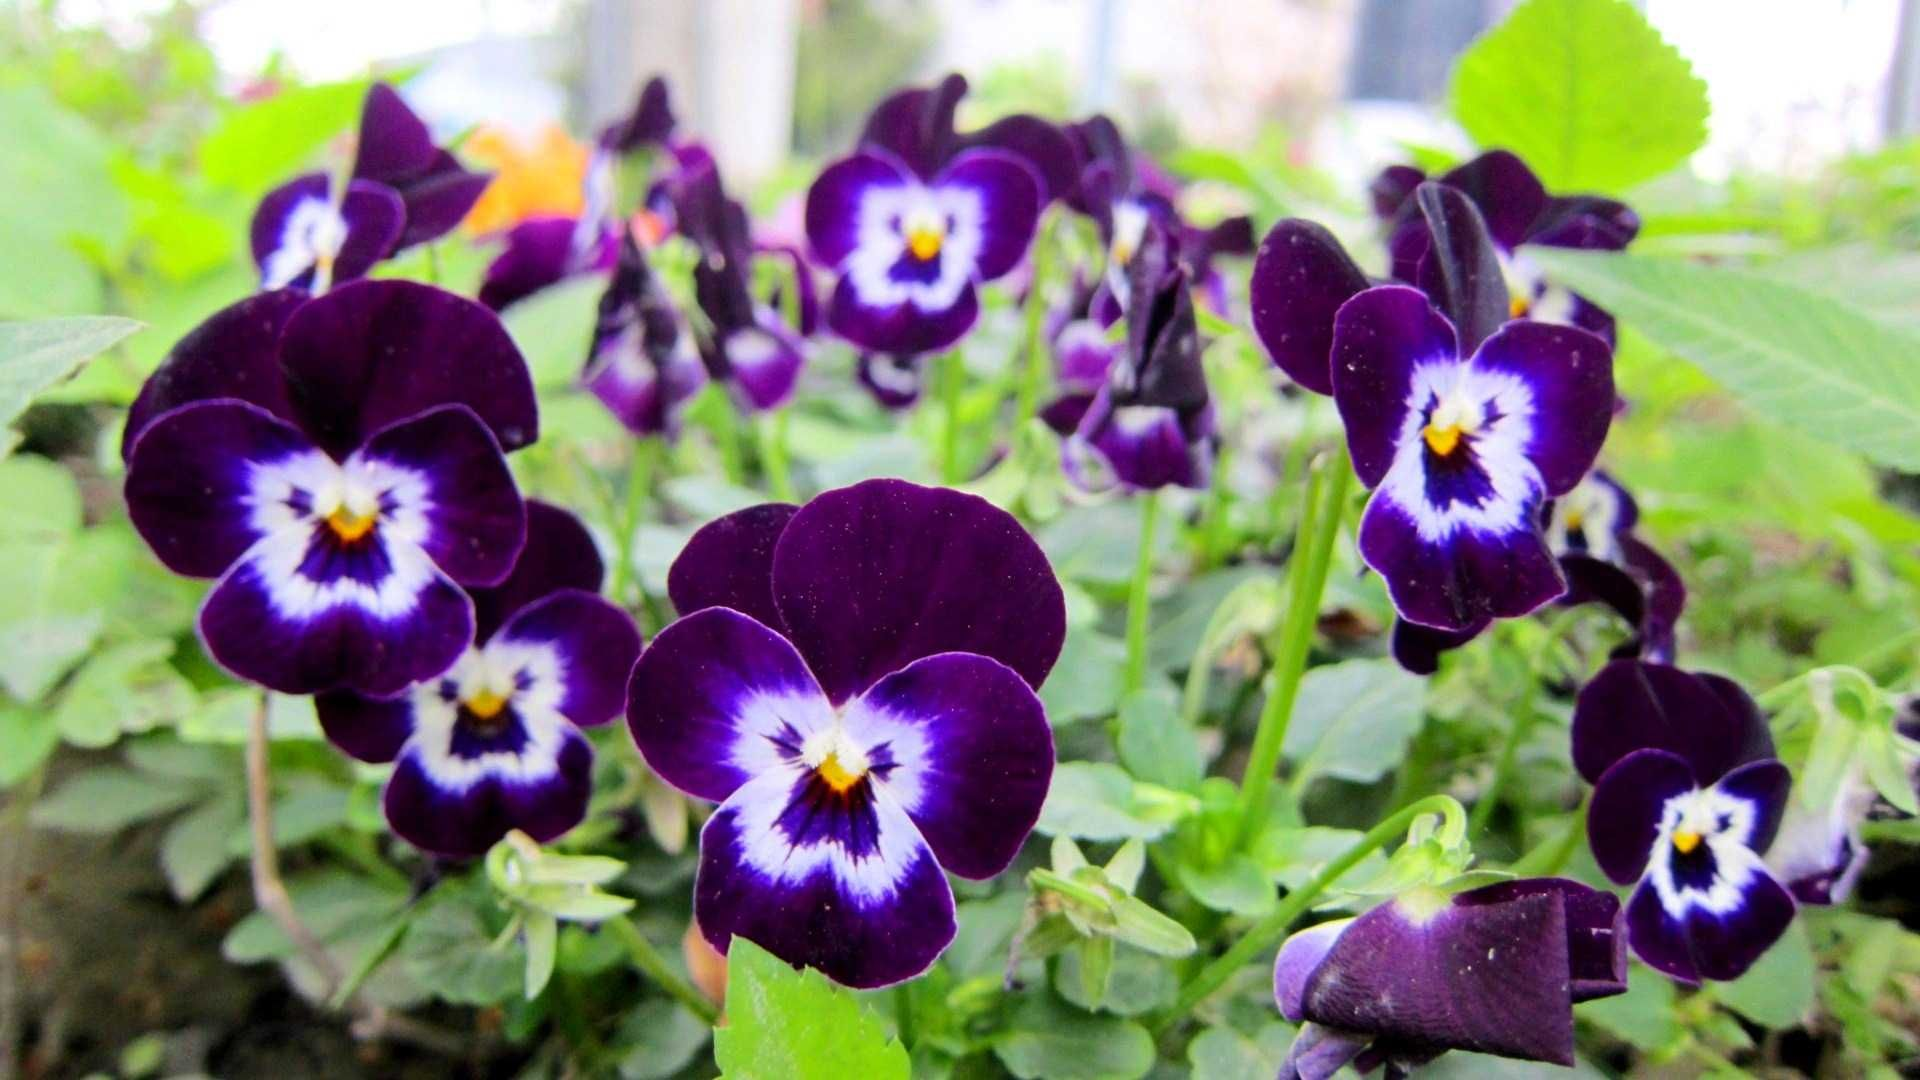 Pansy Flower Hd Wallpapers For Desktop Best Collection